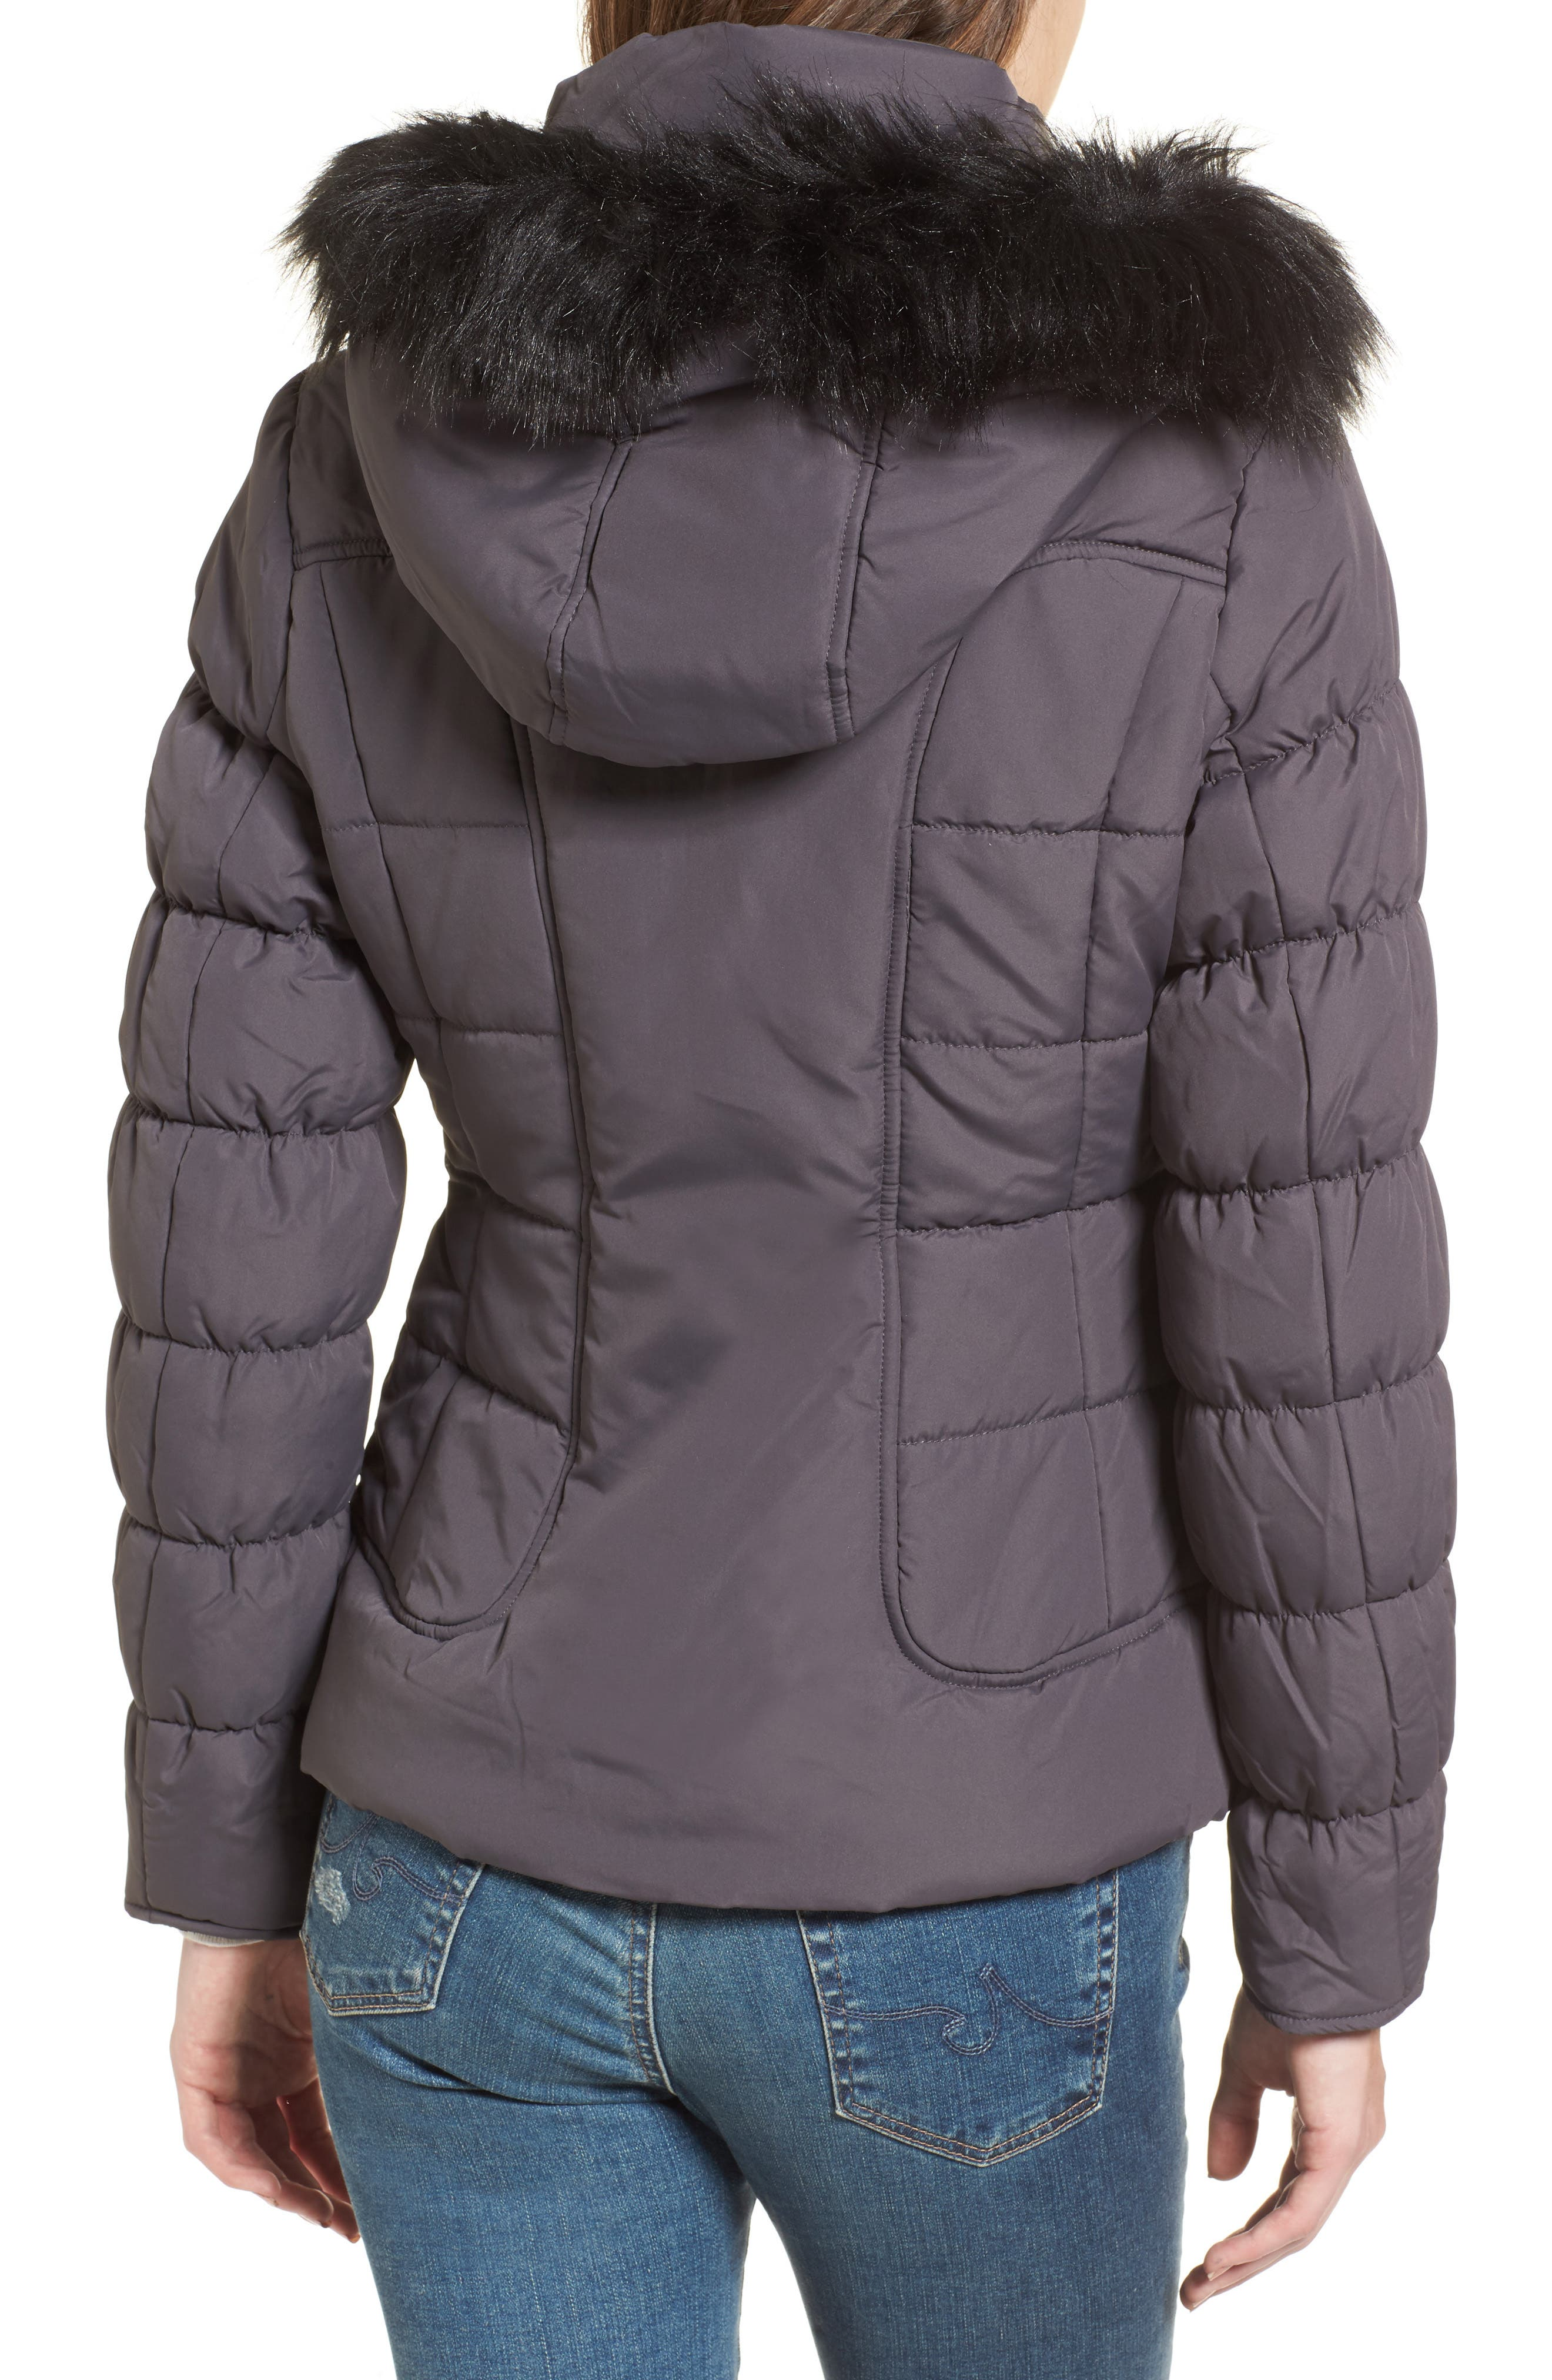 Quilted Jacket with Faux Fur Collar,                             Alternate thumbnail 2, color,                             Concrete